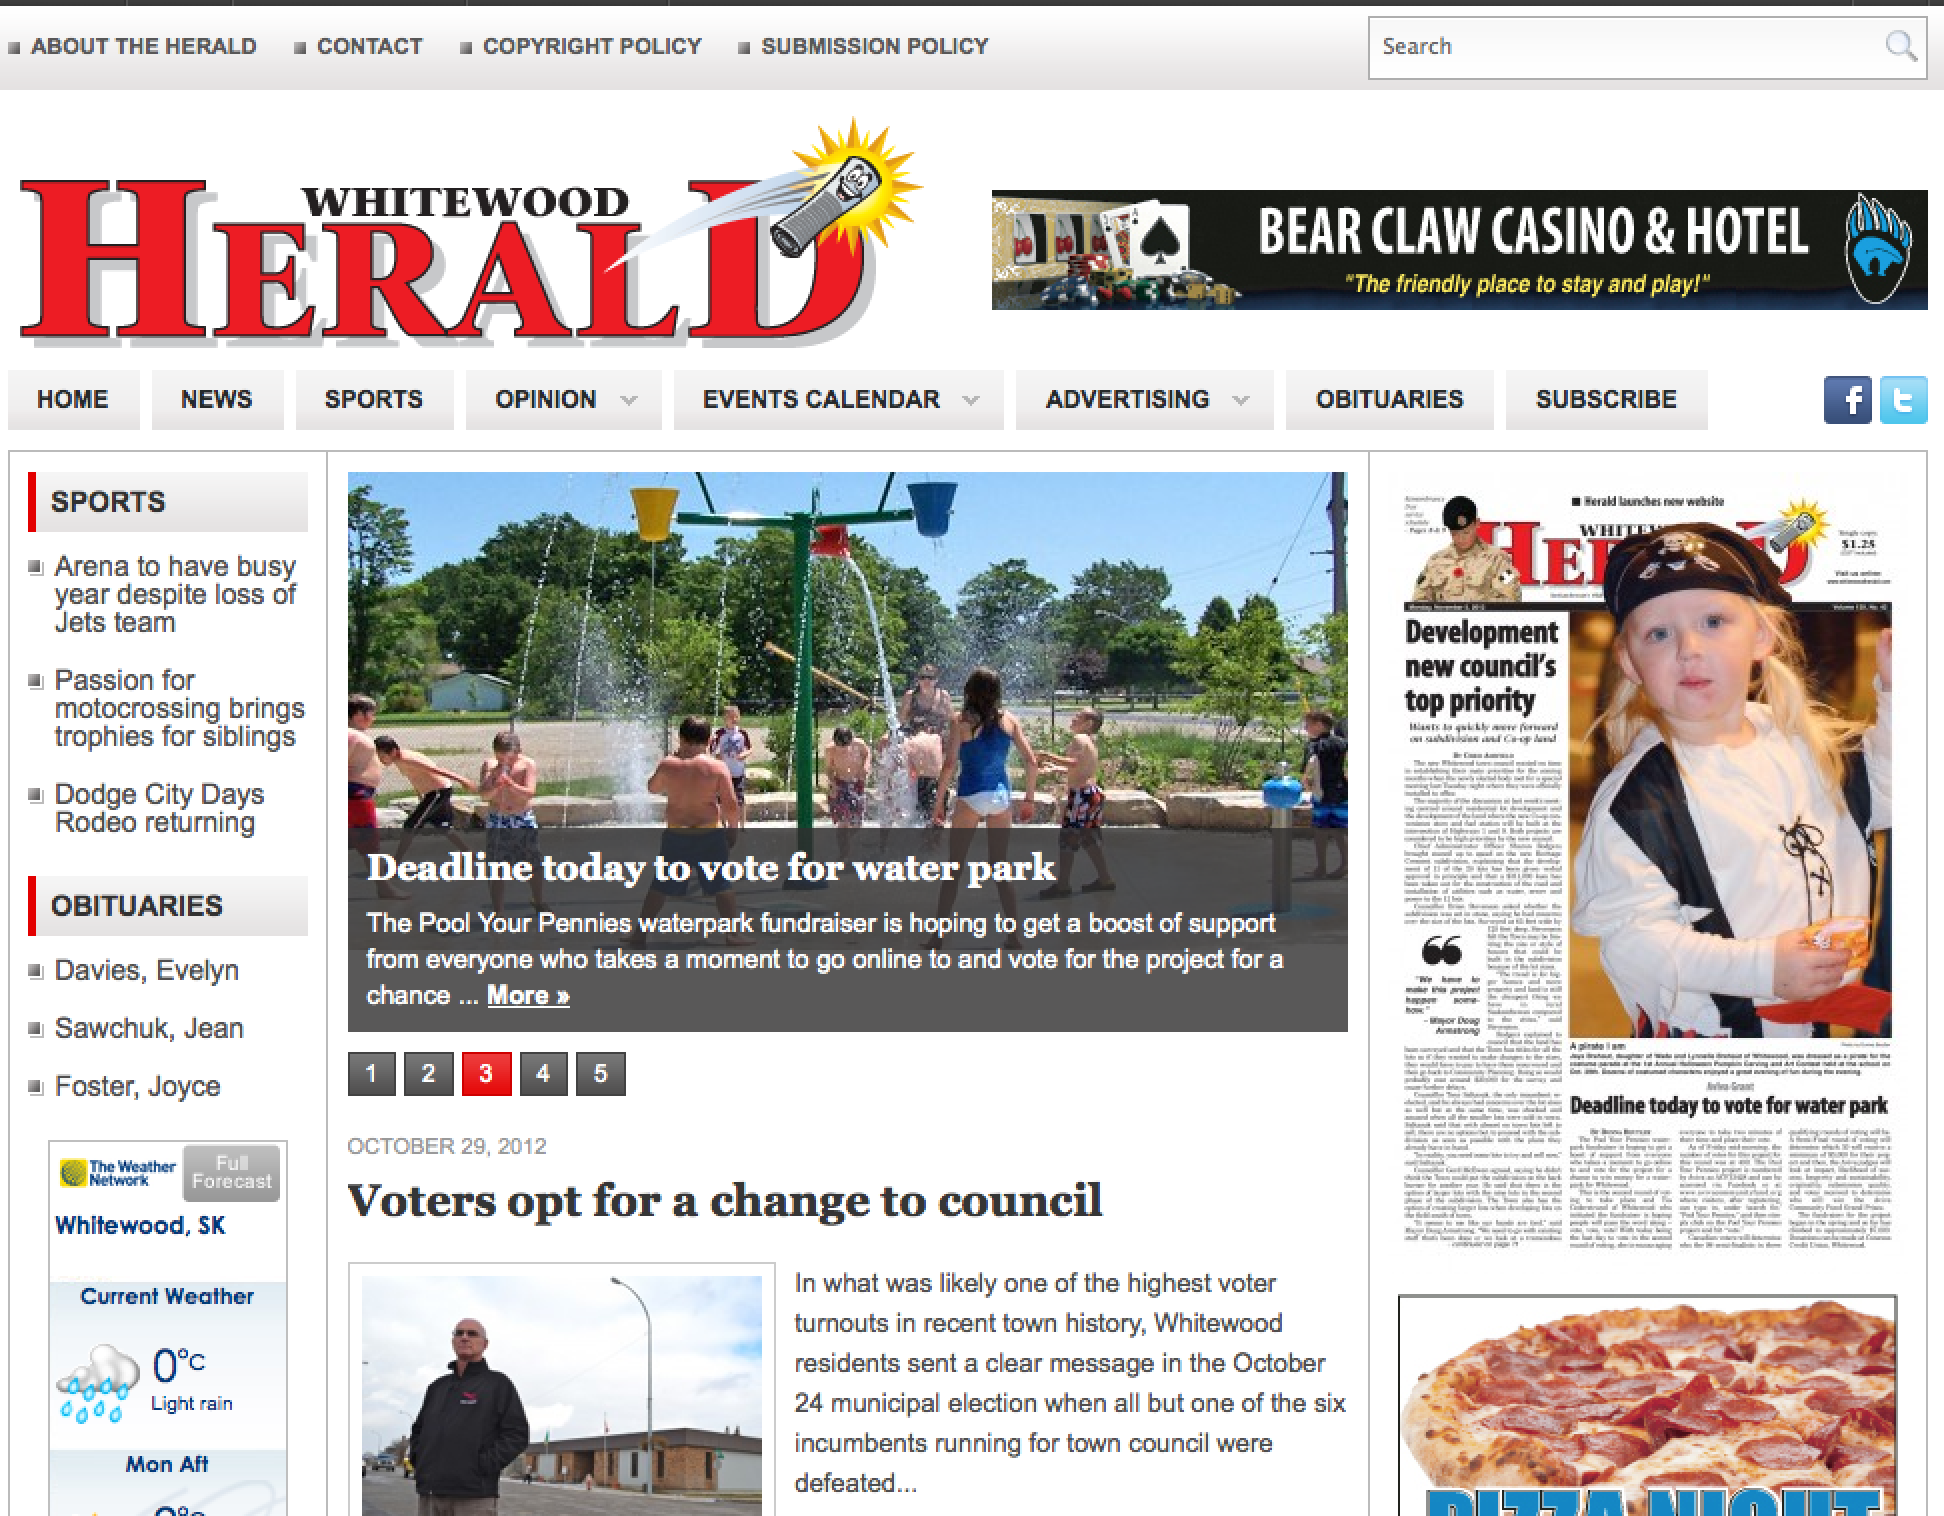 The new Whitewood Herald